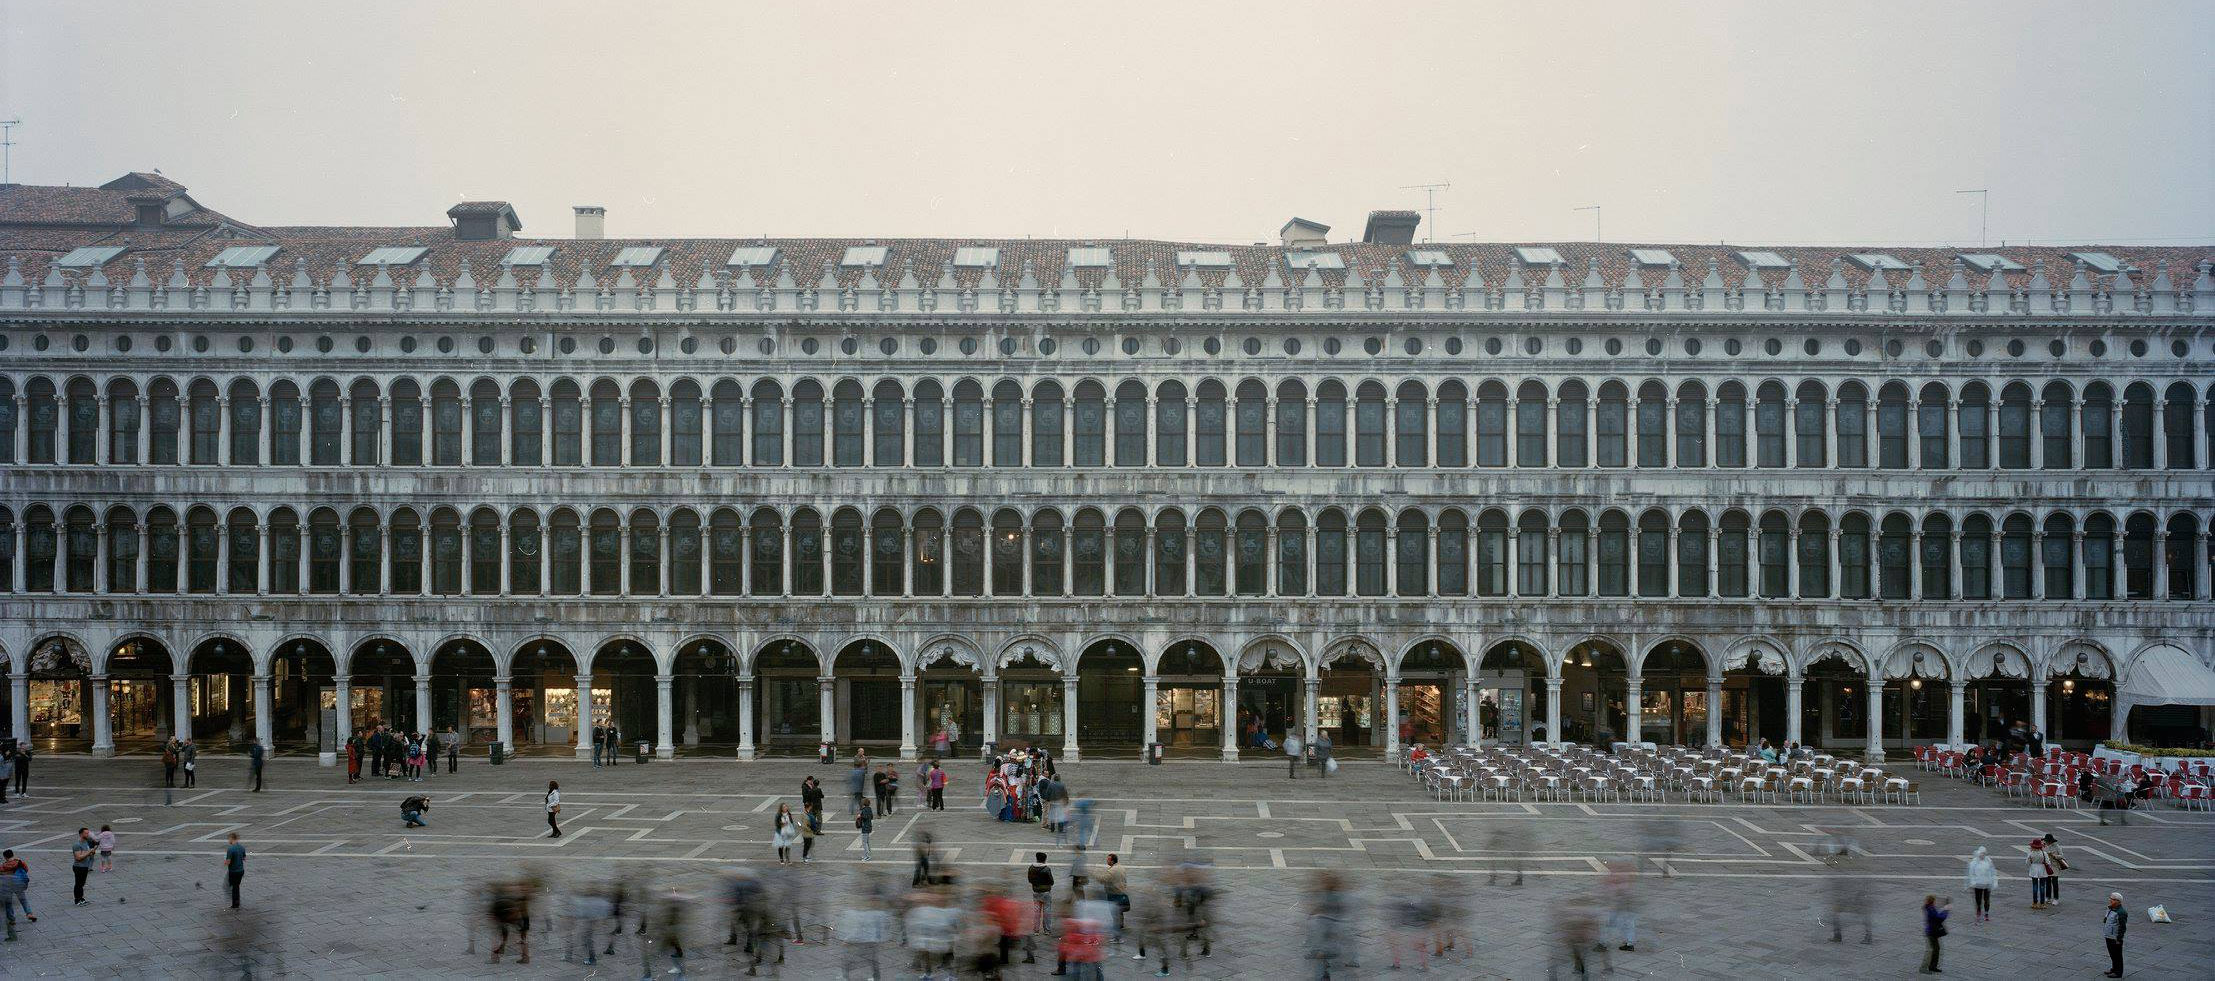 Grand restoration project to reconnect and revitalise Piazza San Marco. Image courtesy of Generali Group